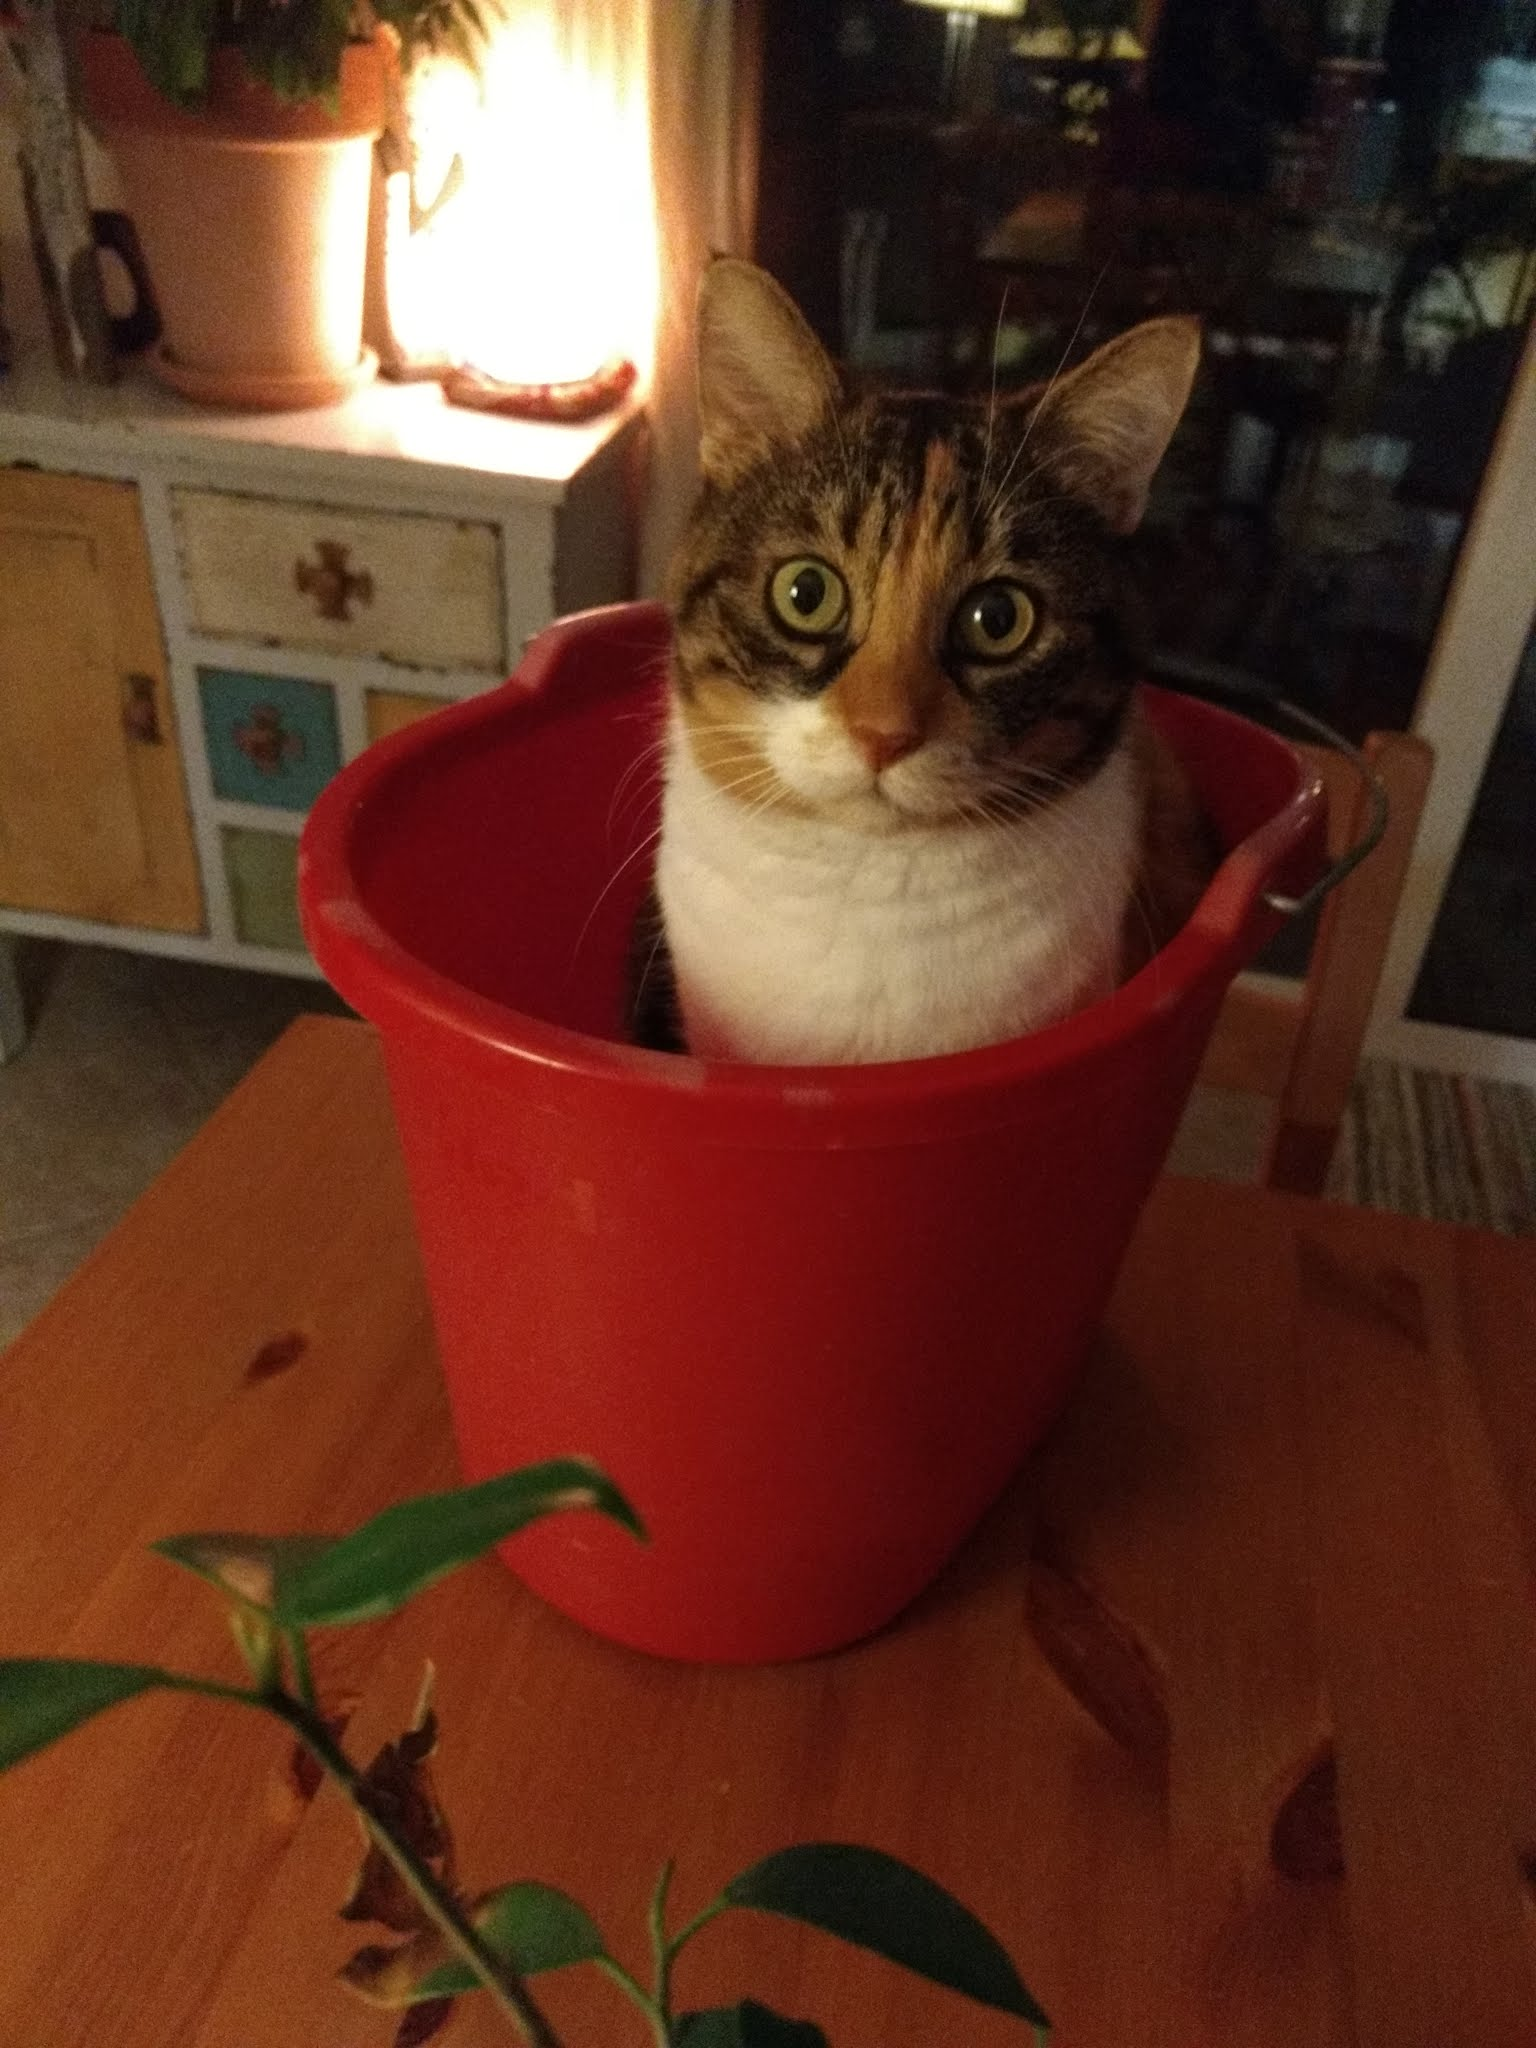 My cat in a bucket